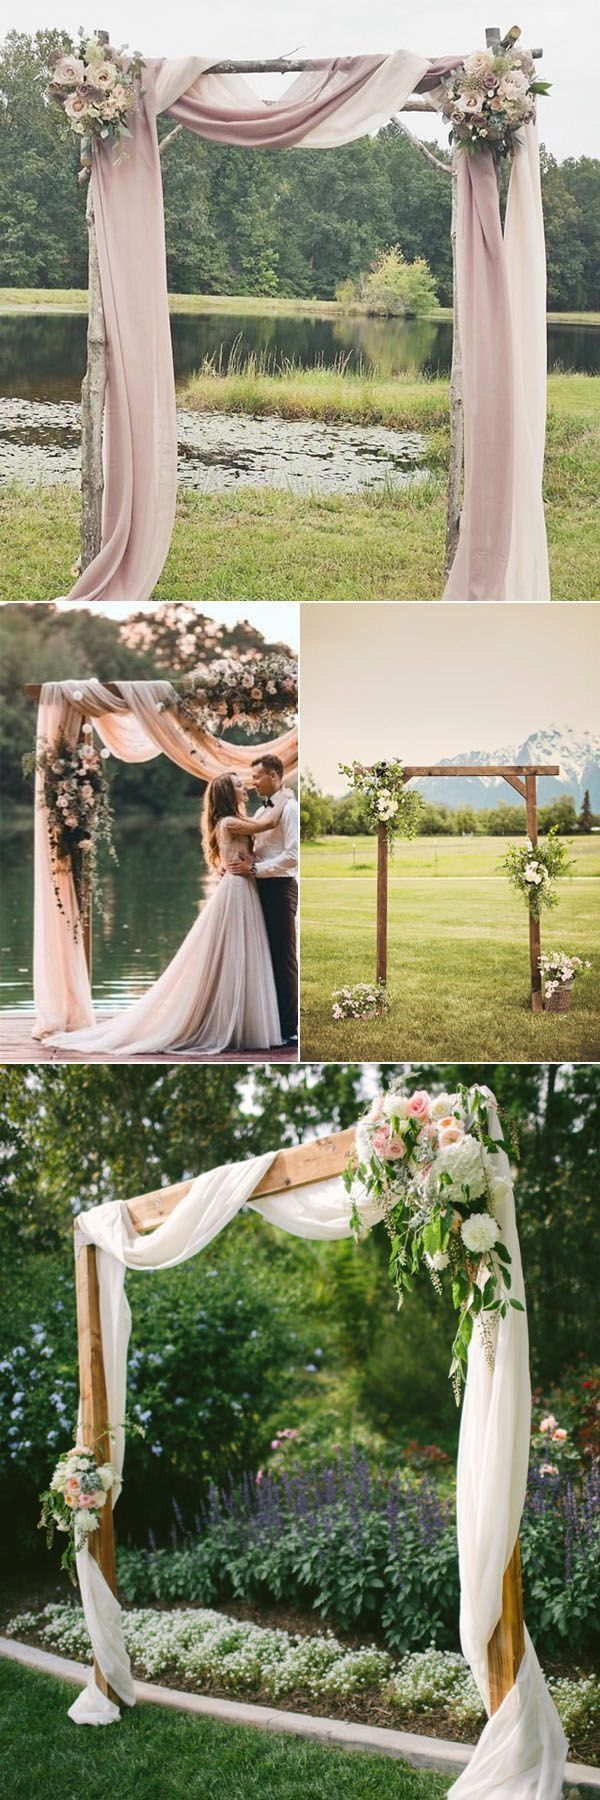 Wedding decorations arch  Simple Outdoor Wedding Decorations Rustic Wedding Alter Simple